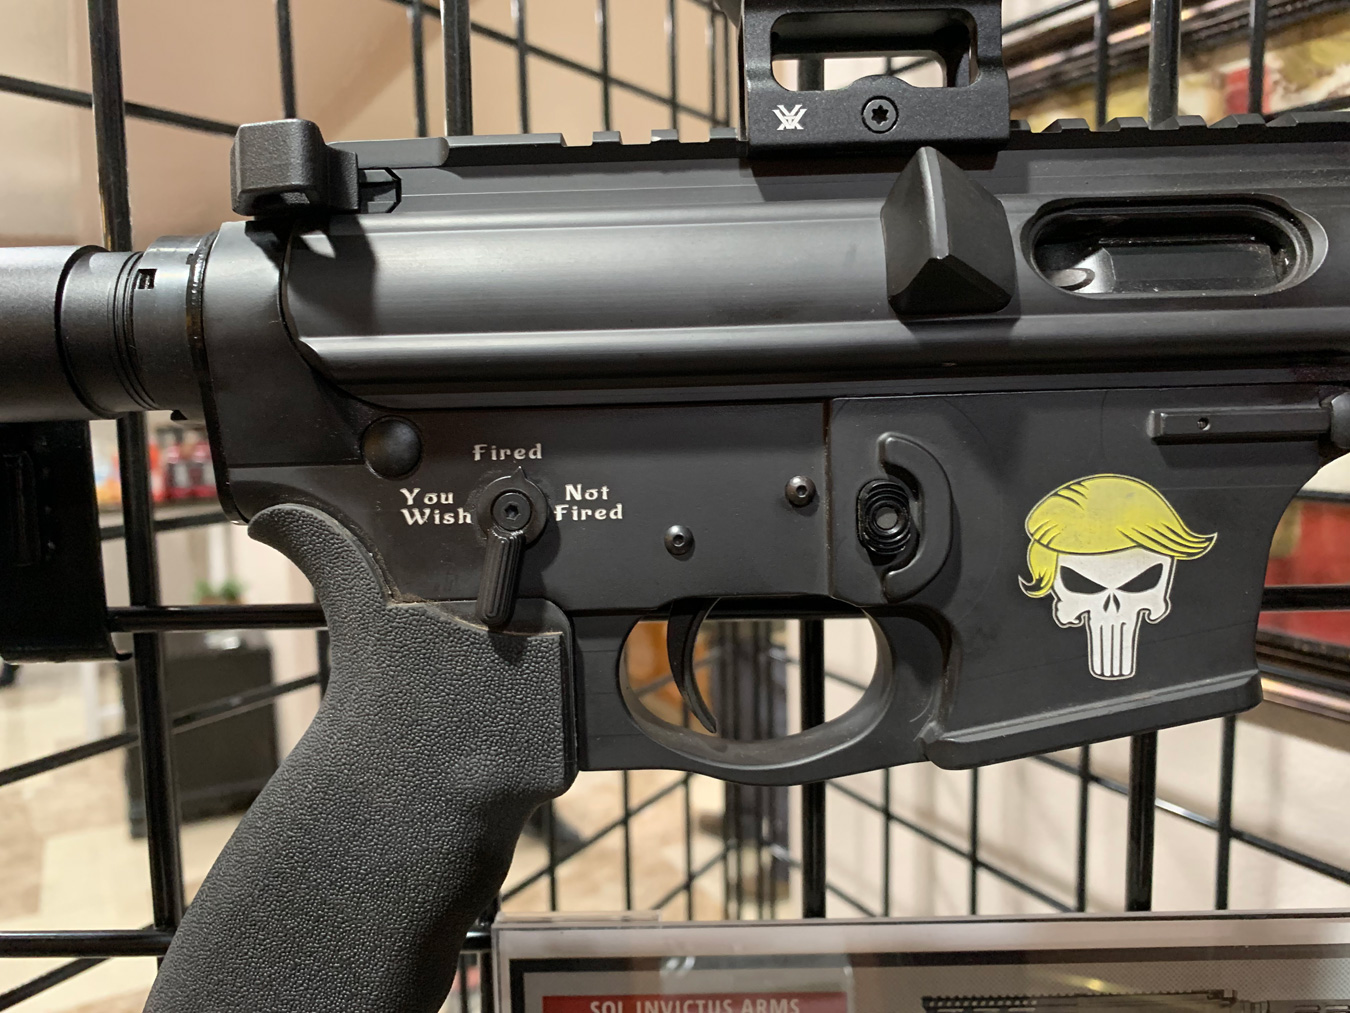 AR-15 with custom Donald Trump graphic